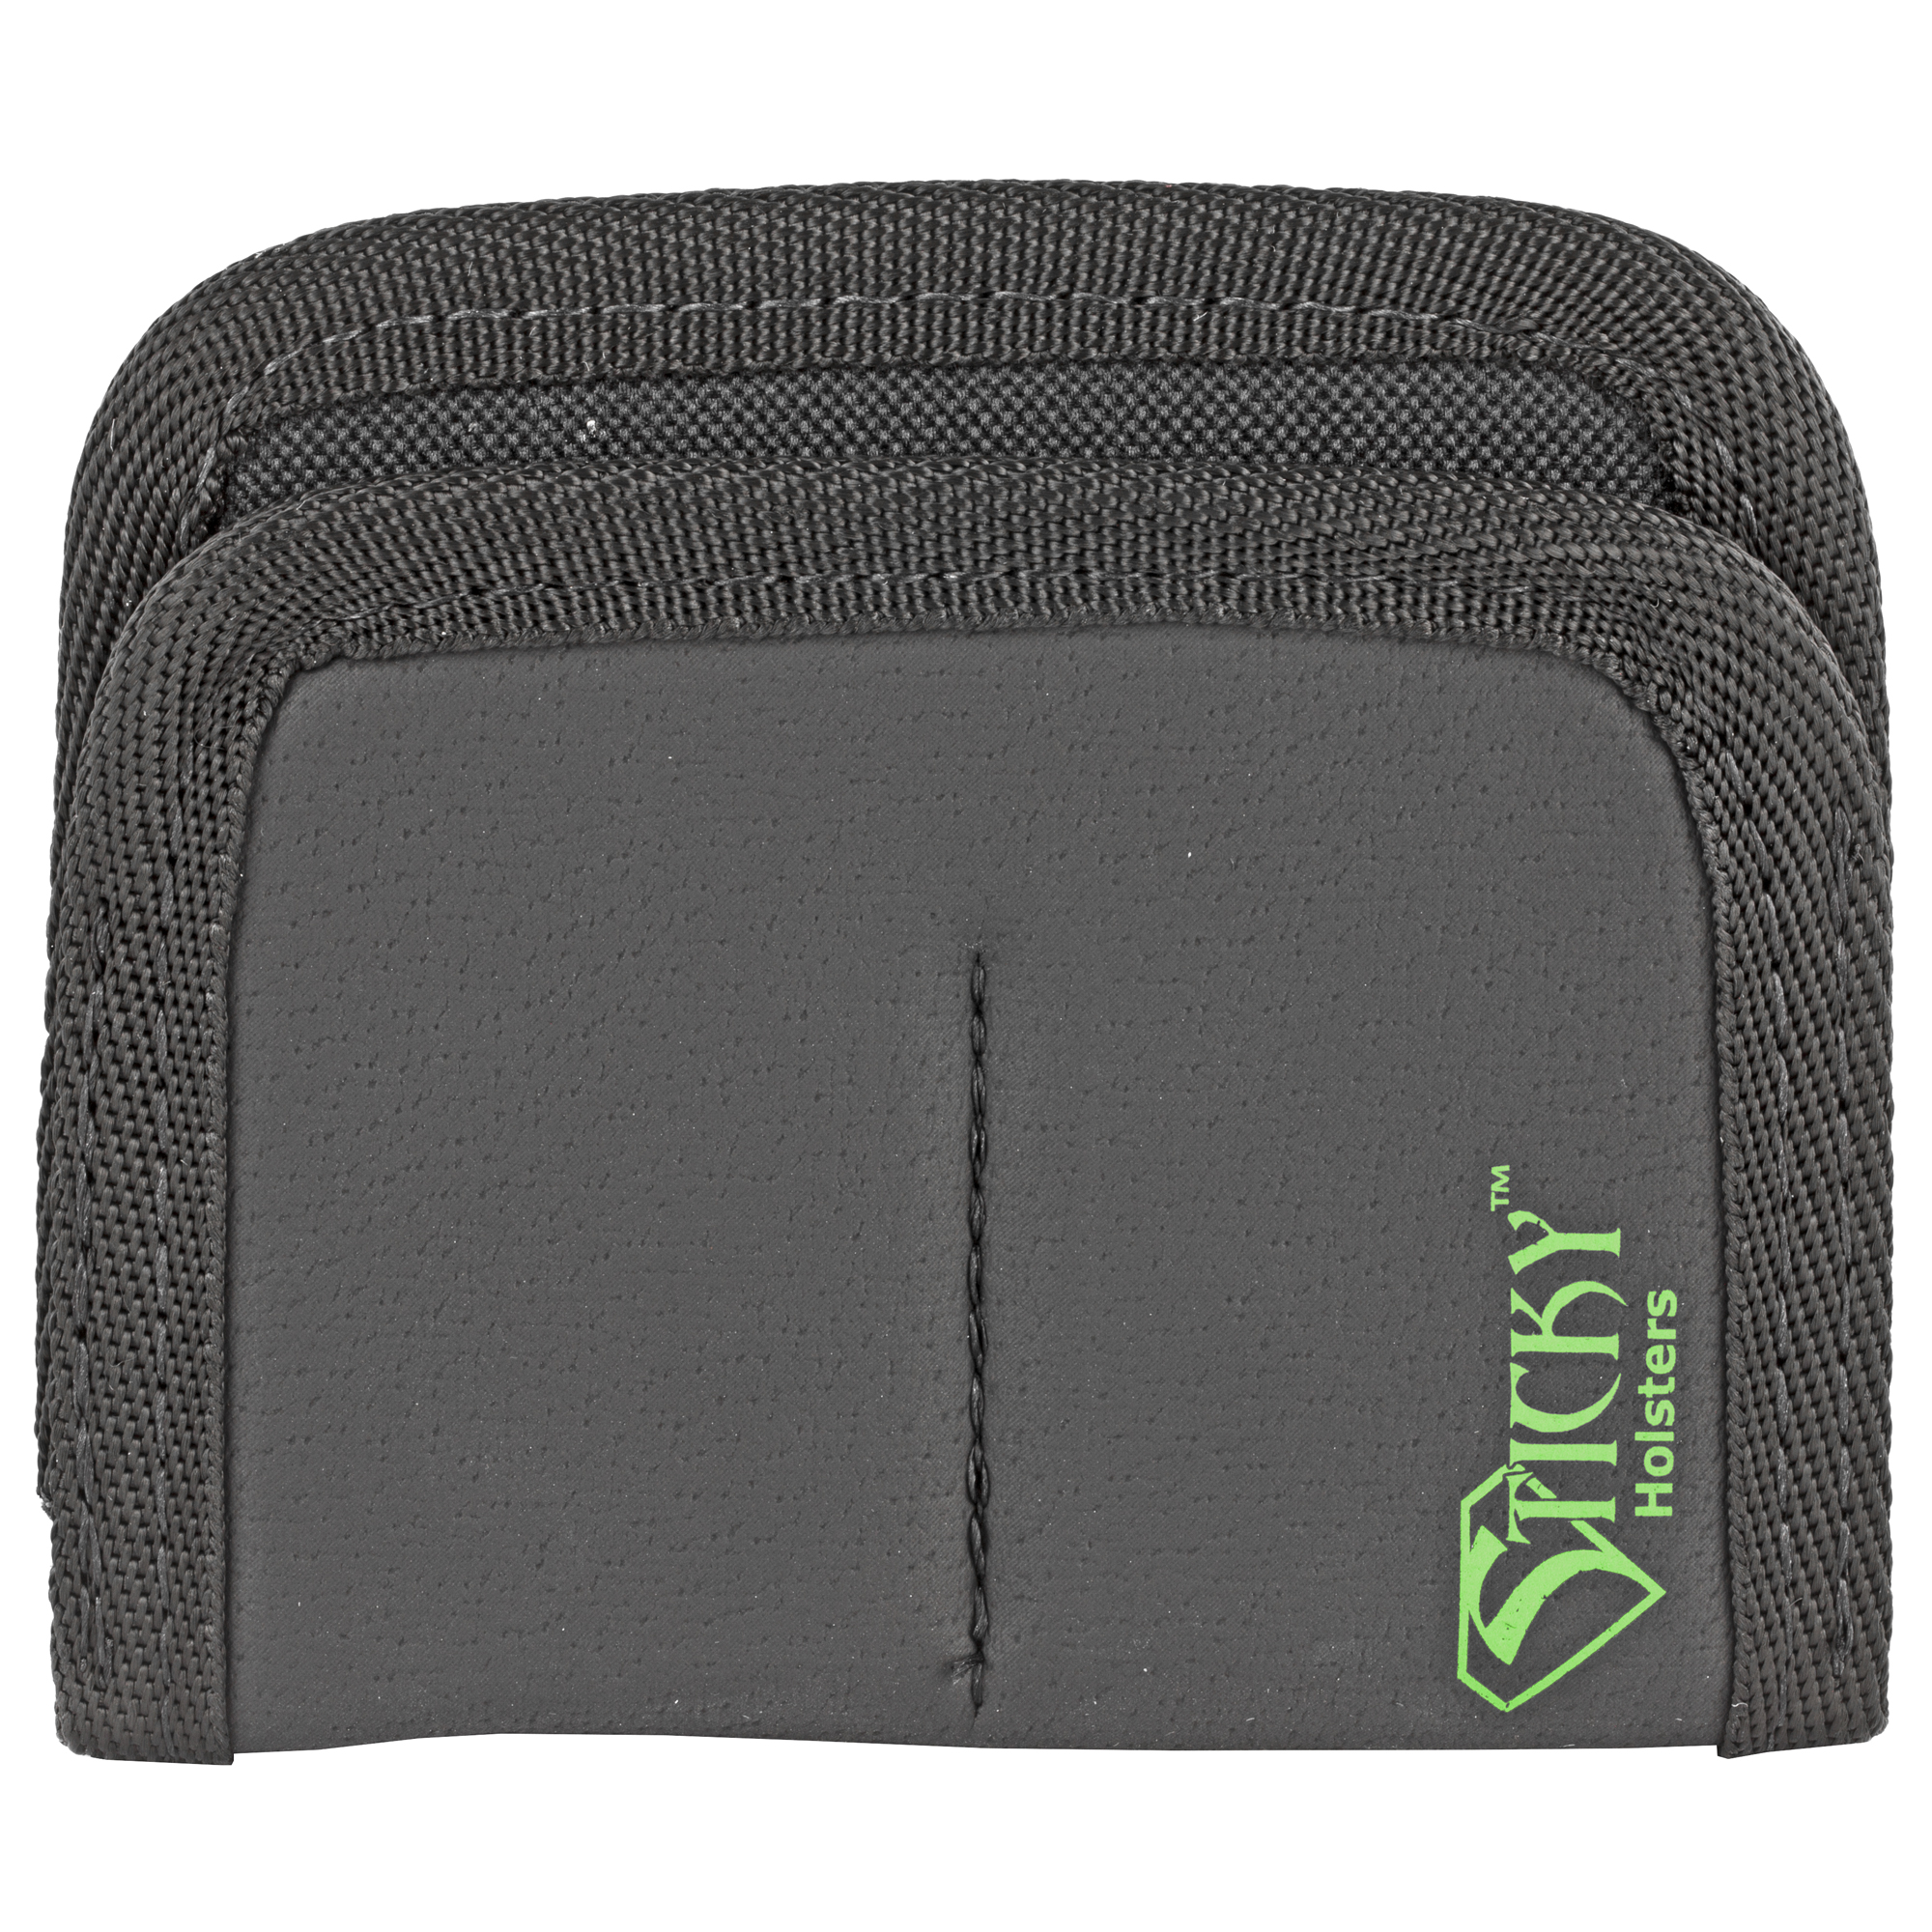 The Dual Mini Mag Sleeve is a IWB or Pocket magazine or accessory holder. This is designed for small single stack magazines. The Dual has two mag sleeves sewn together. Fits magazines similar in size or small than a Glock 43.